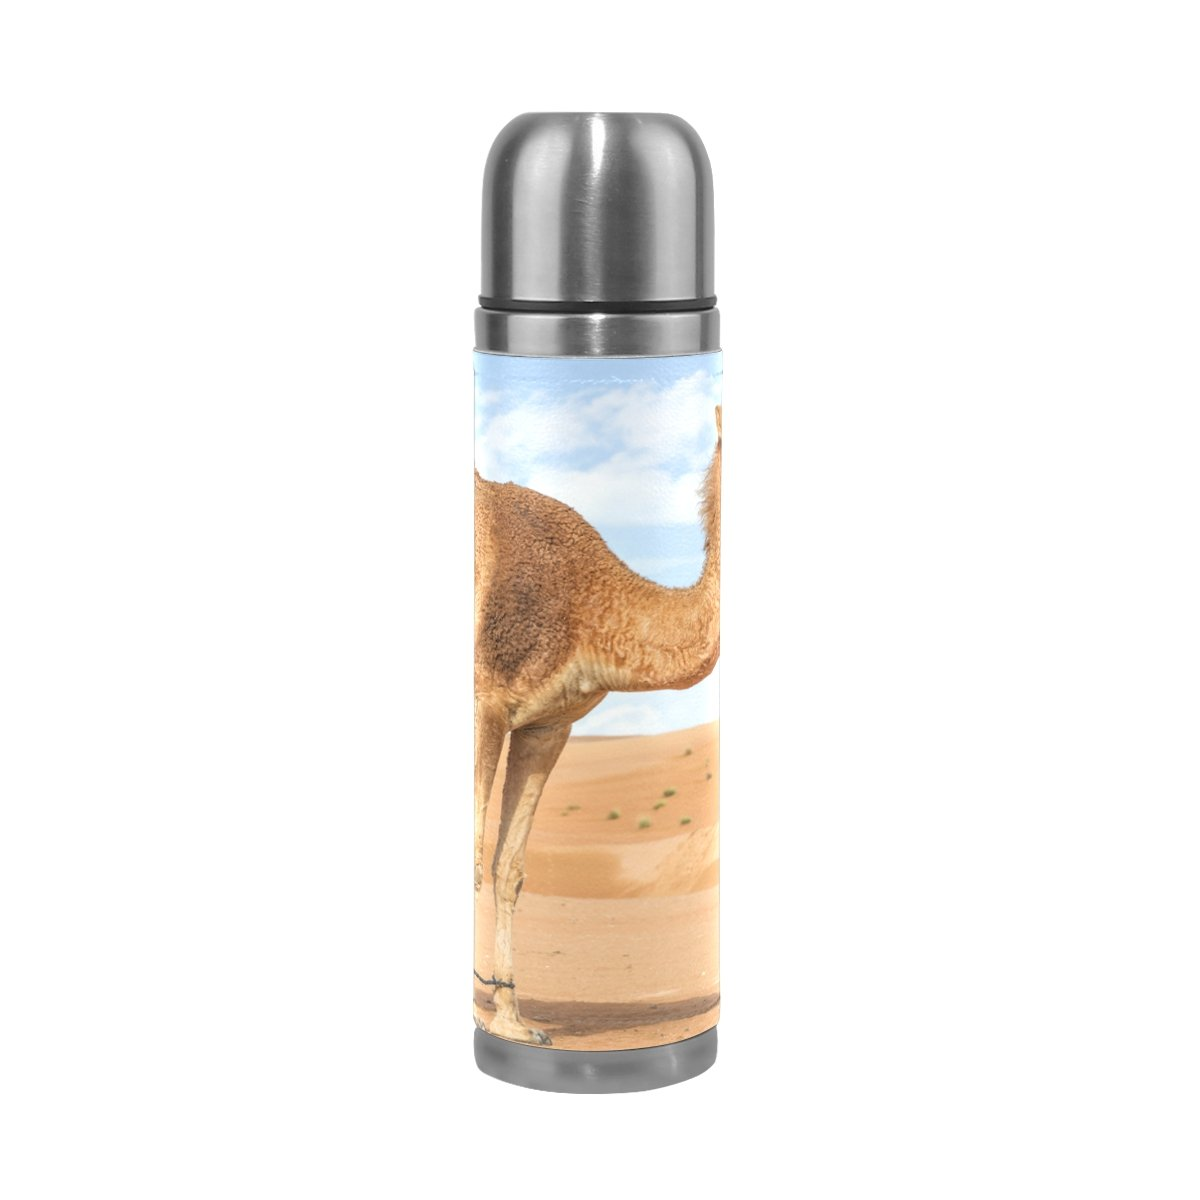 ALAZA India Wild Camel Stainless Steel Water Bottle Vacuum Insulated Thermos Double Wall Flask Genuine Leather Cover 17 OZ